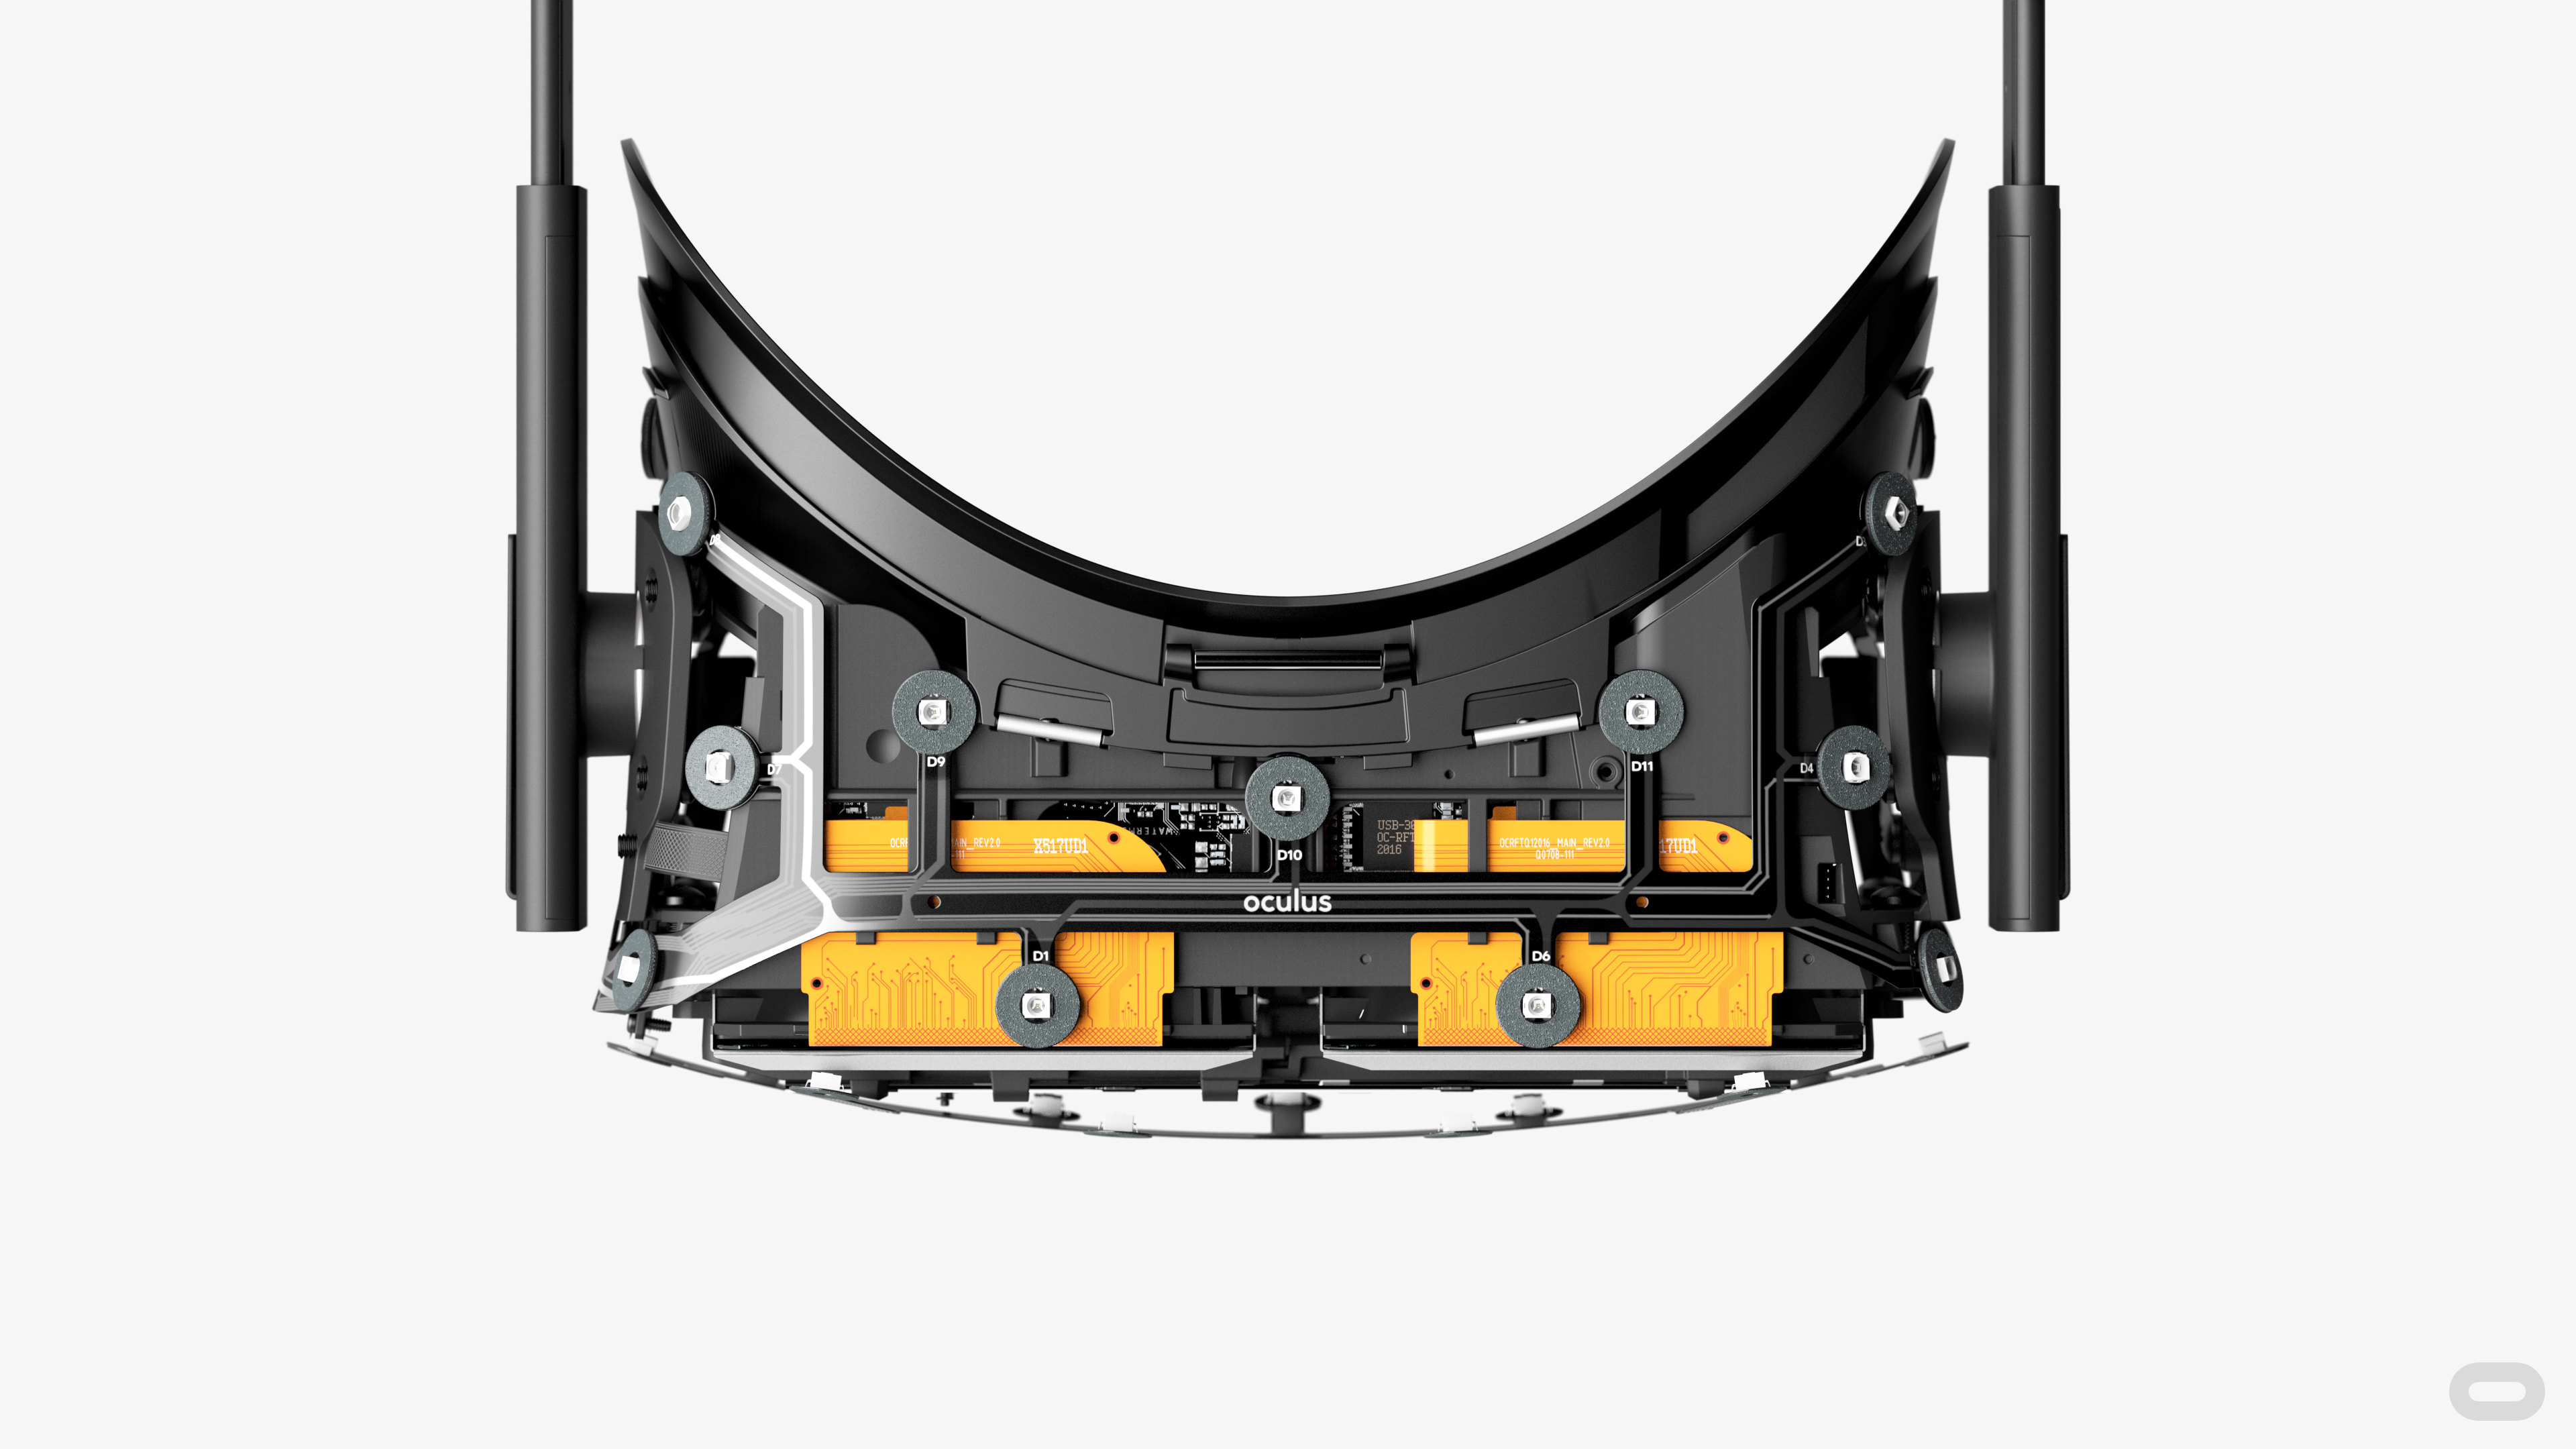 Oculus Rift Release: 9 Things to Know